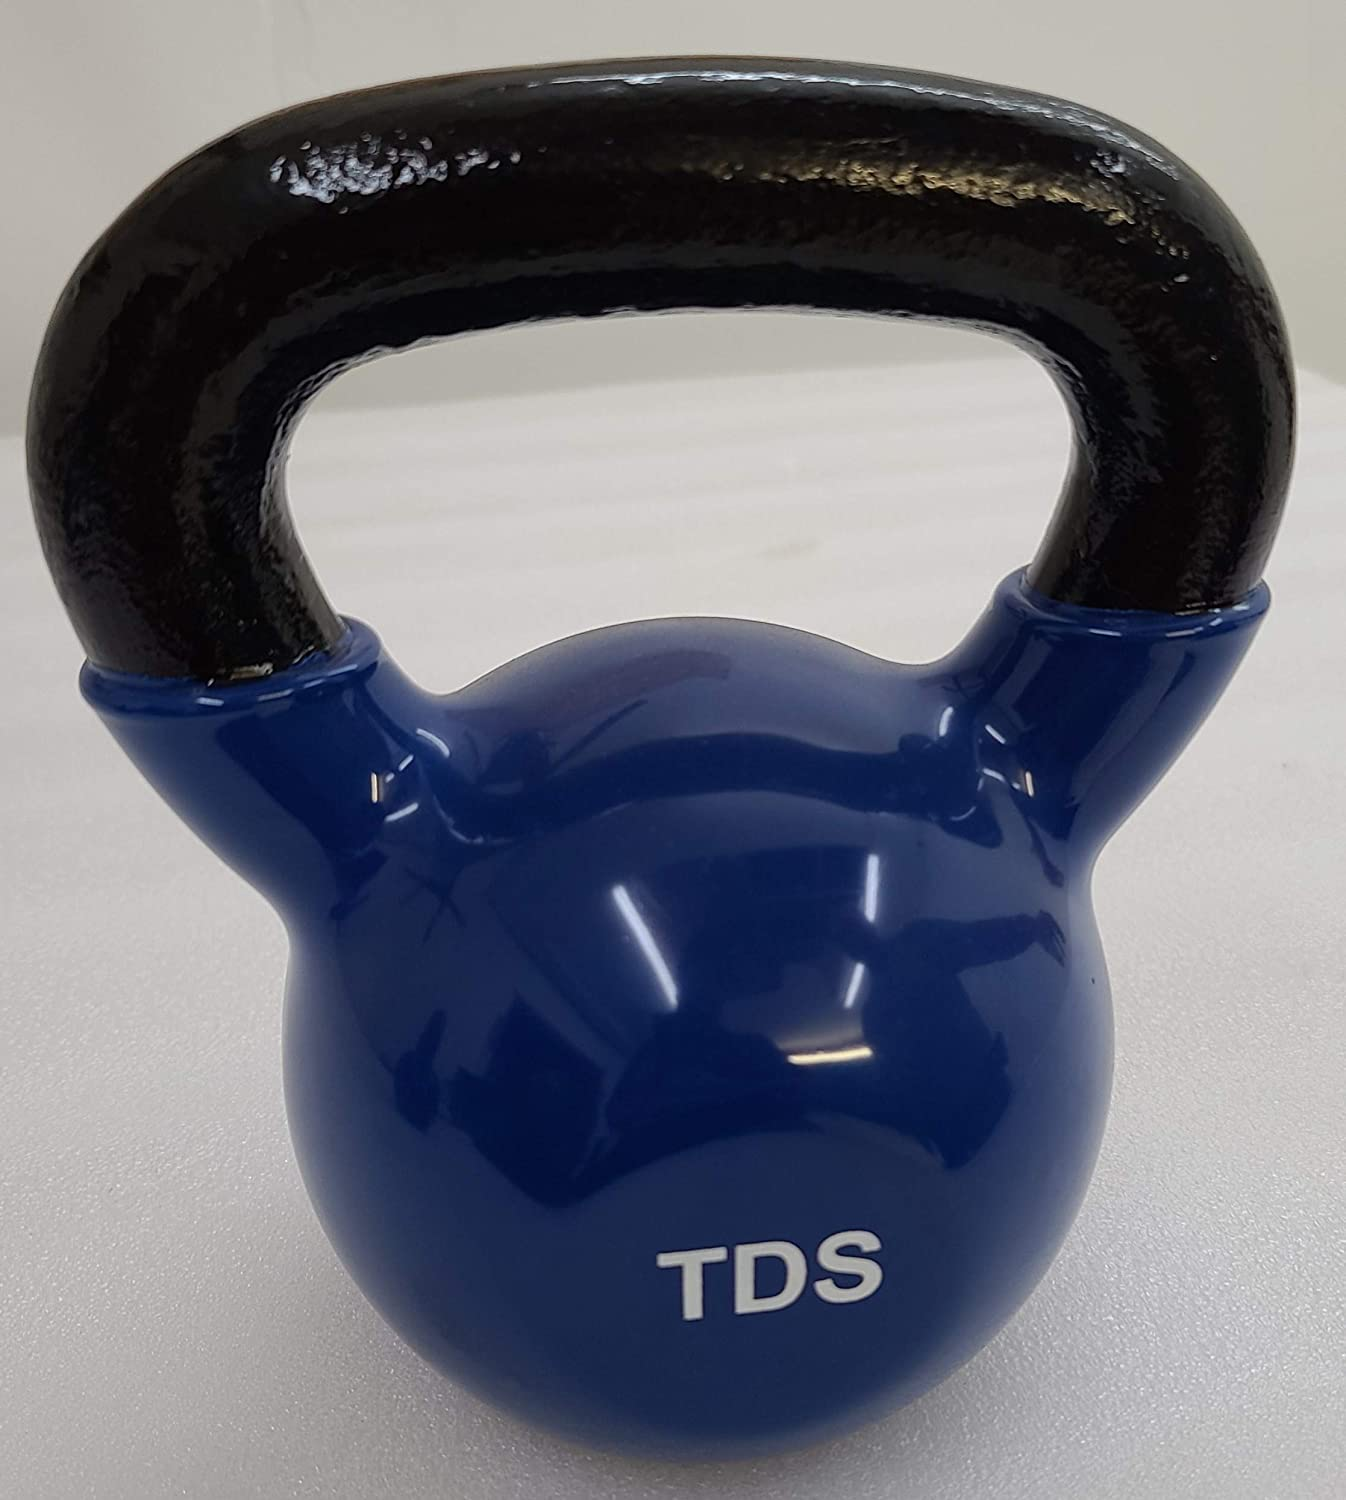 Vinyl Coated Kettlebell for workouts Gym Quality Strength Training 40 LB